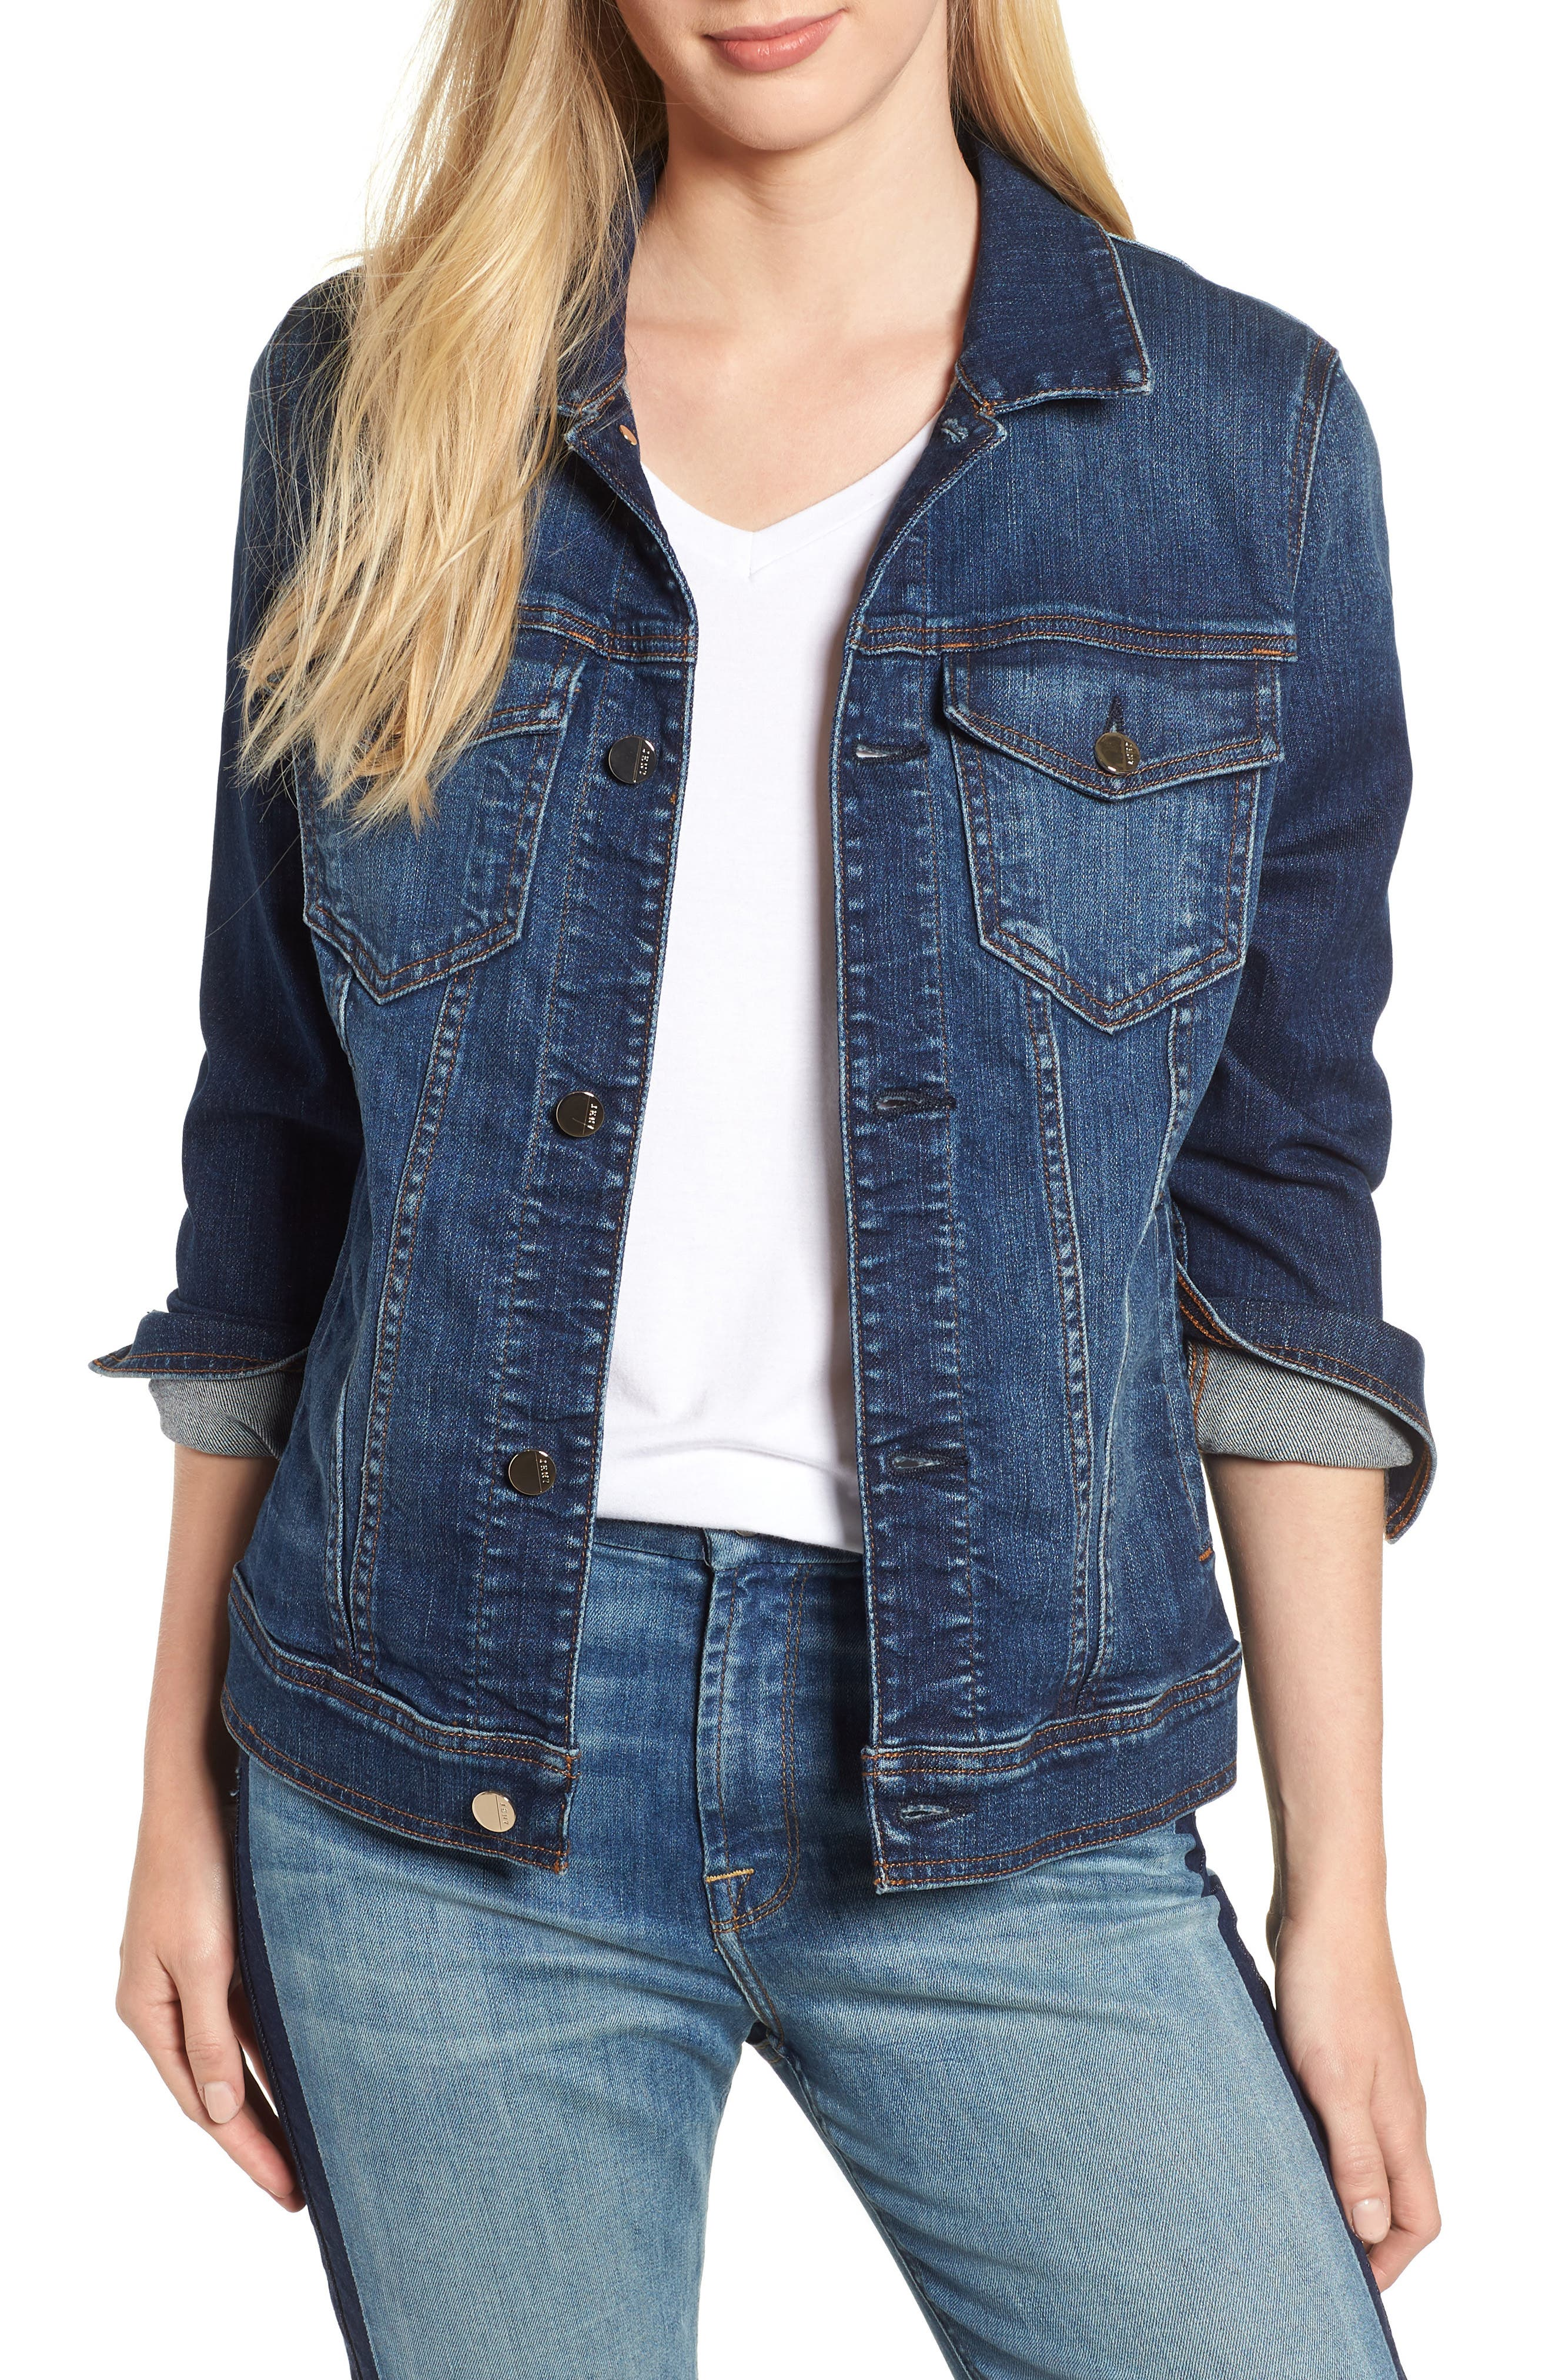 JEN7 BY 7 FOR ALL MANKIND, Classic Denim Jacket, Main thumbnail 1, color, 403